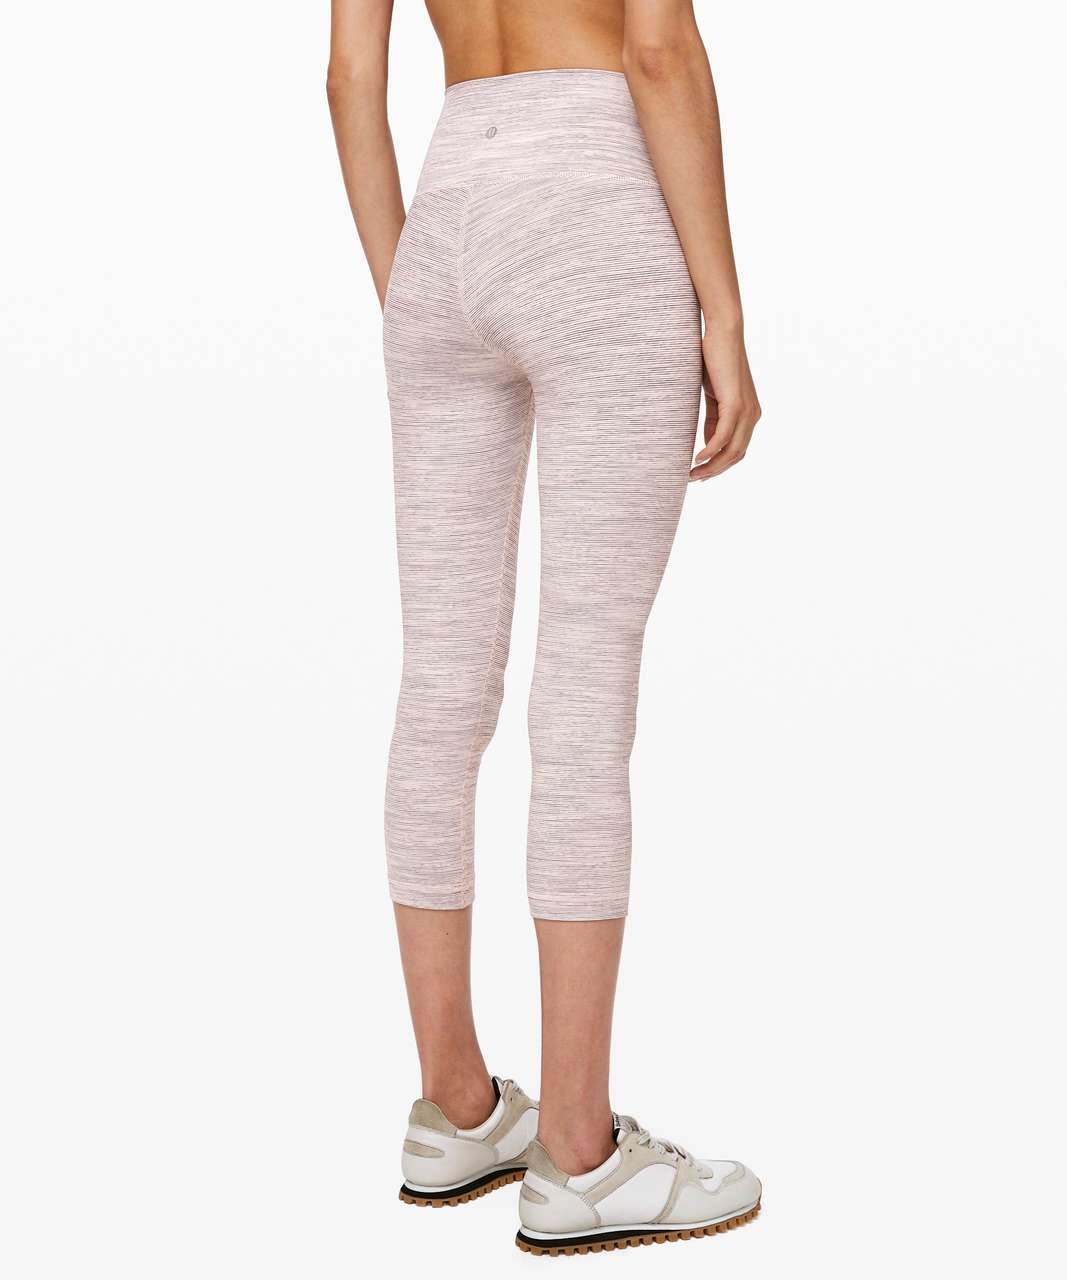 "Lululemon Wunder Under Crop (High-Rise) *21"" - Wee Are From Space Pink Bliss Vintage Mauve"